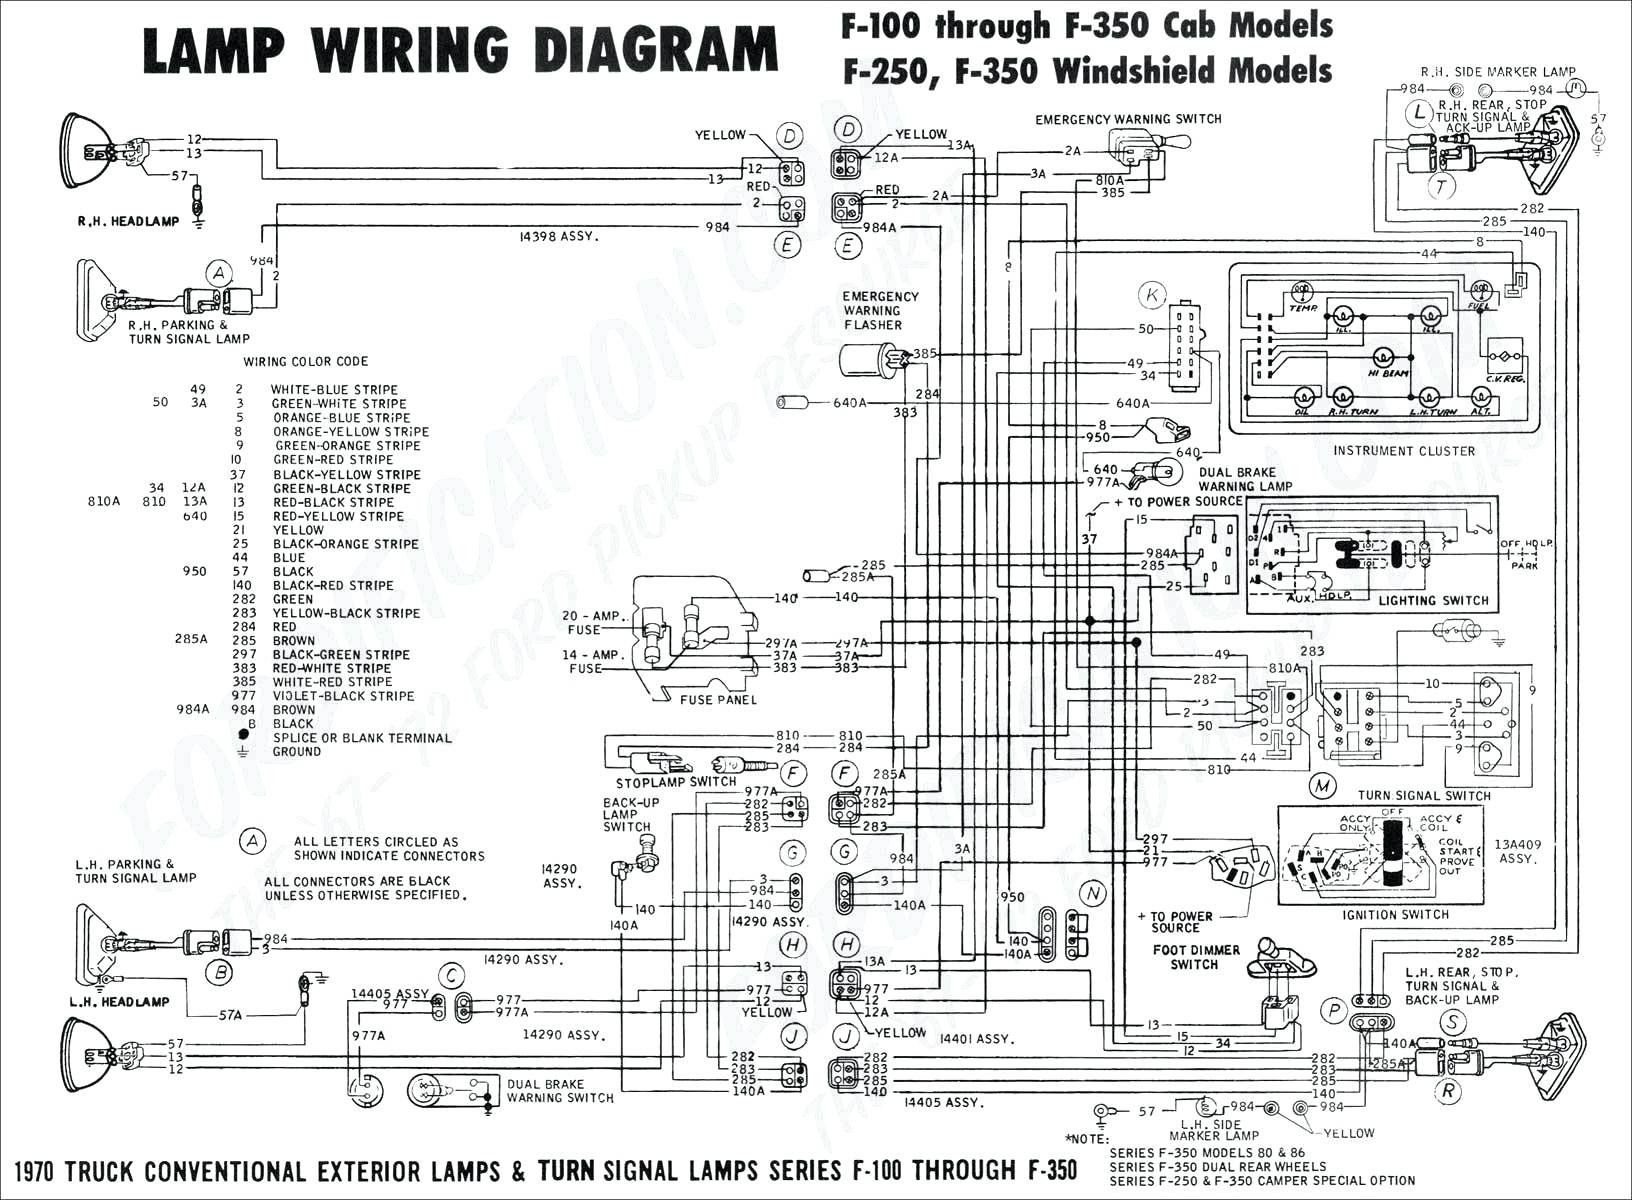 2006 ford f350 wiring schematic wiring diagram 2006 ford f350 chassis factory 2006 ford f350 wiring diagrams #11